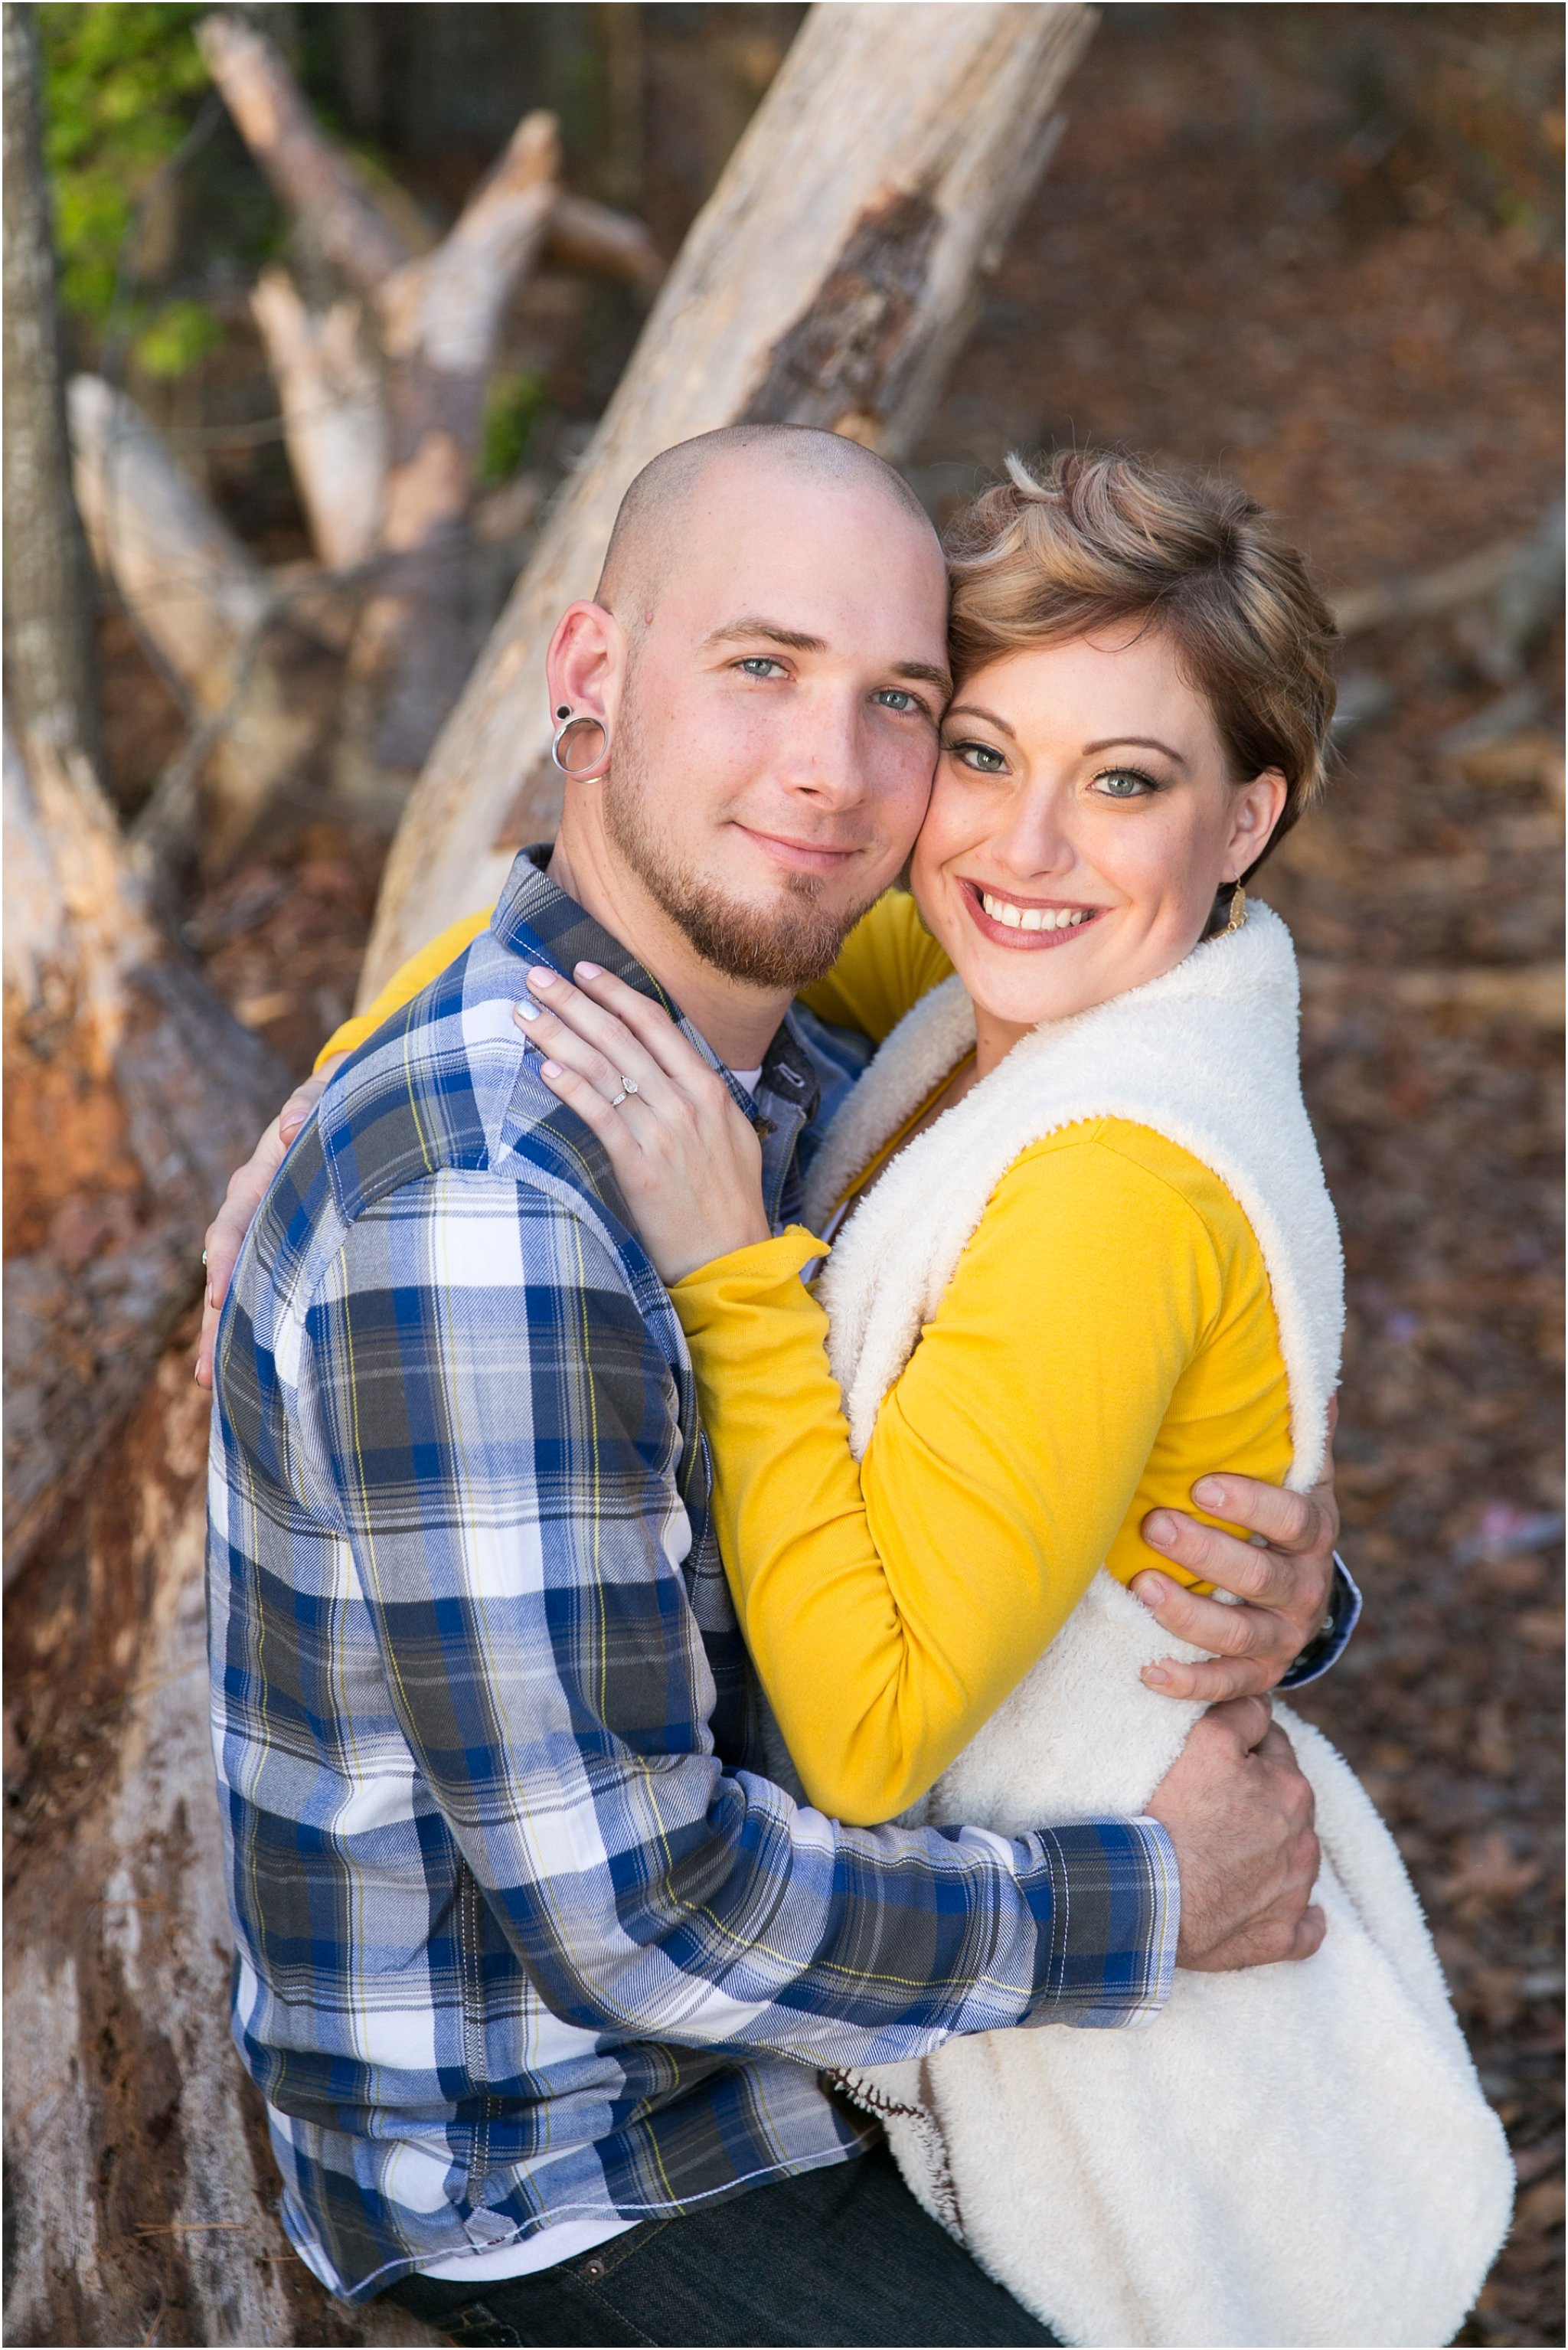 jessica_ryan_photography_virginia_beach_virginia_engagements_engagement_photographer_candid_1060